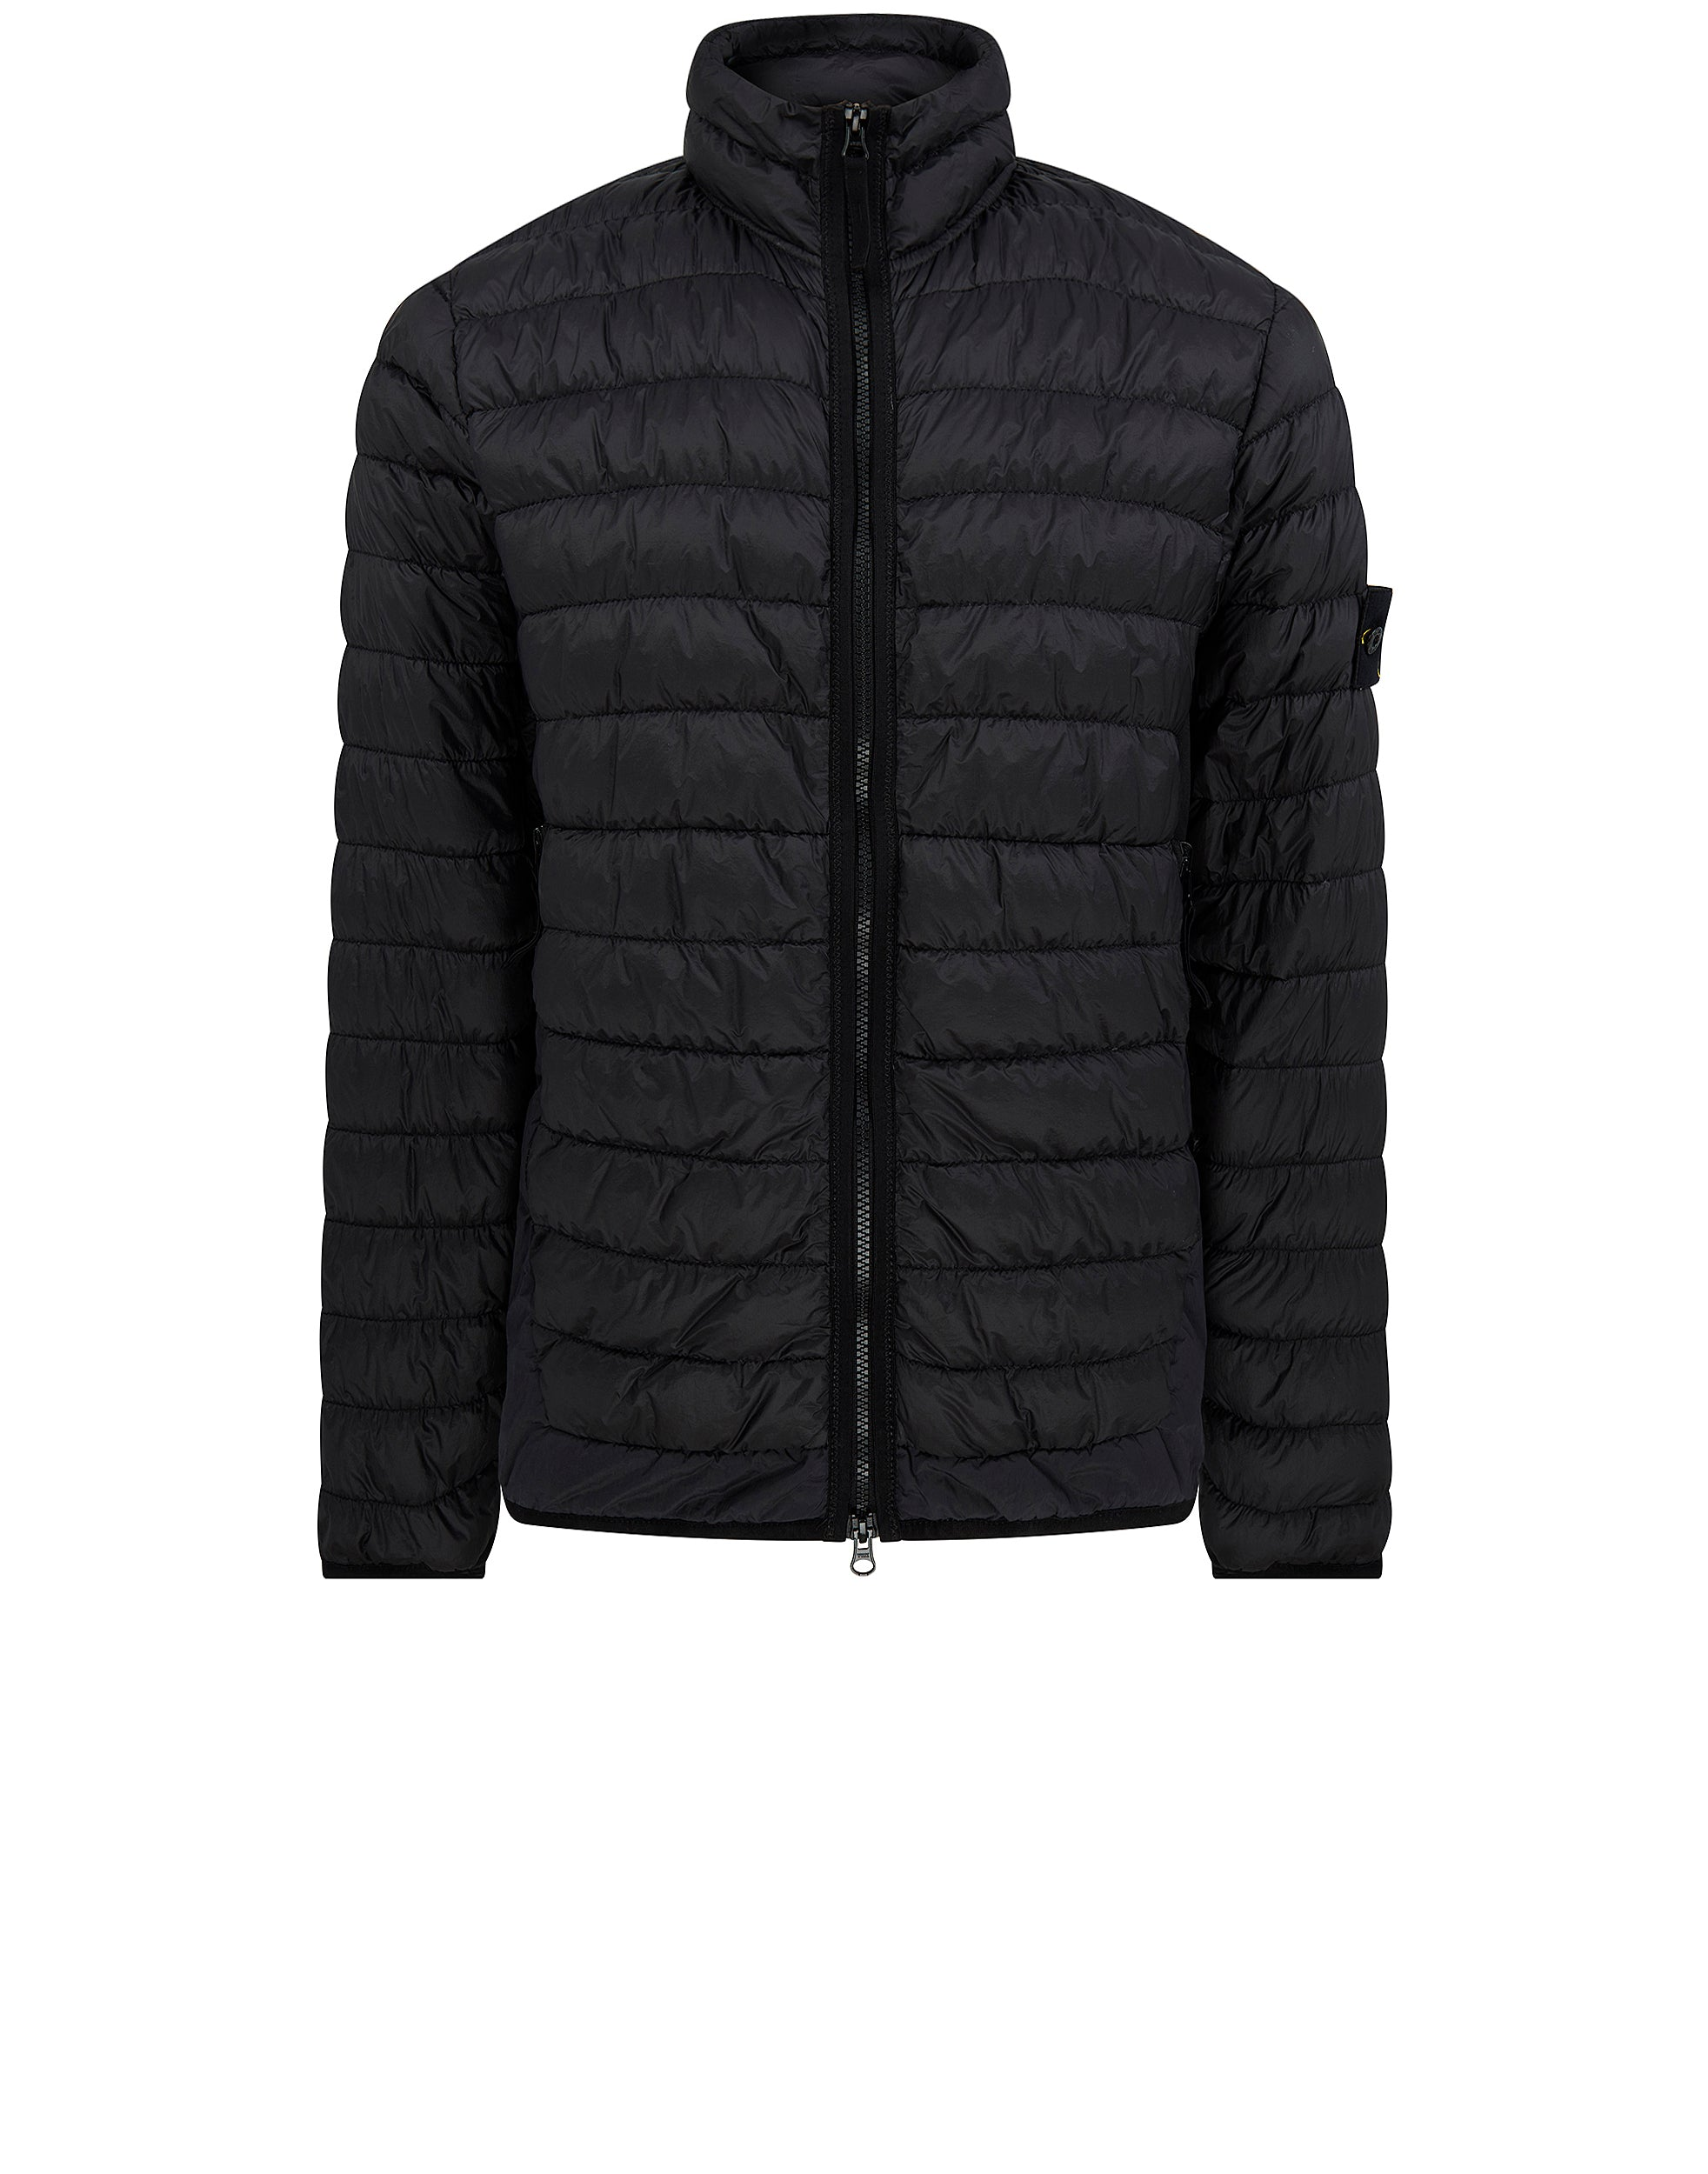 40324 GARMENT-DYED MICRO YARN DOWN_PACKABLE Jacket in Black